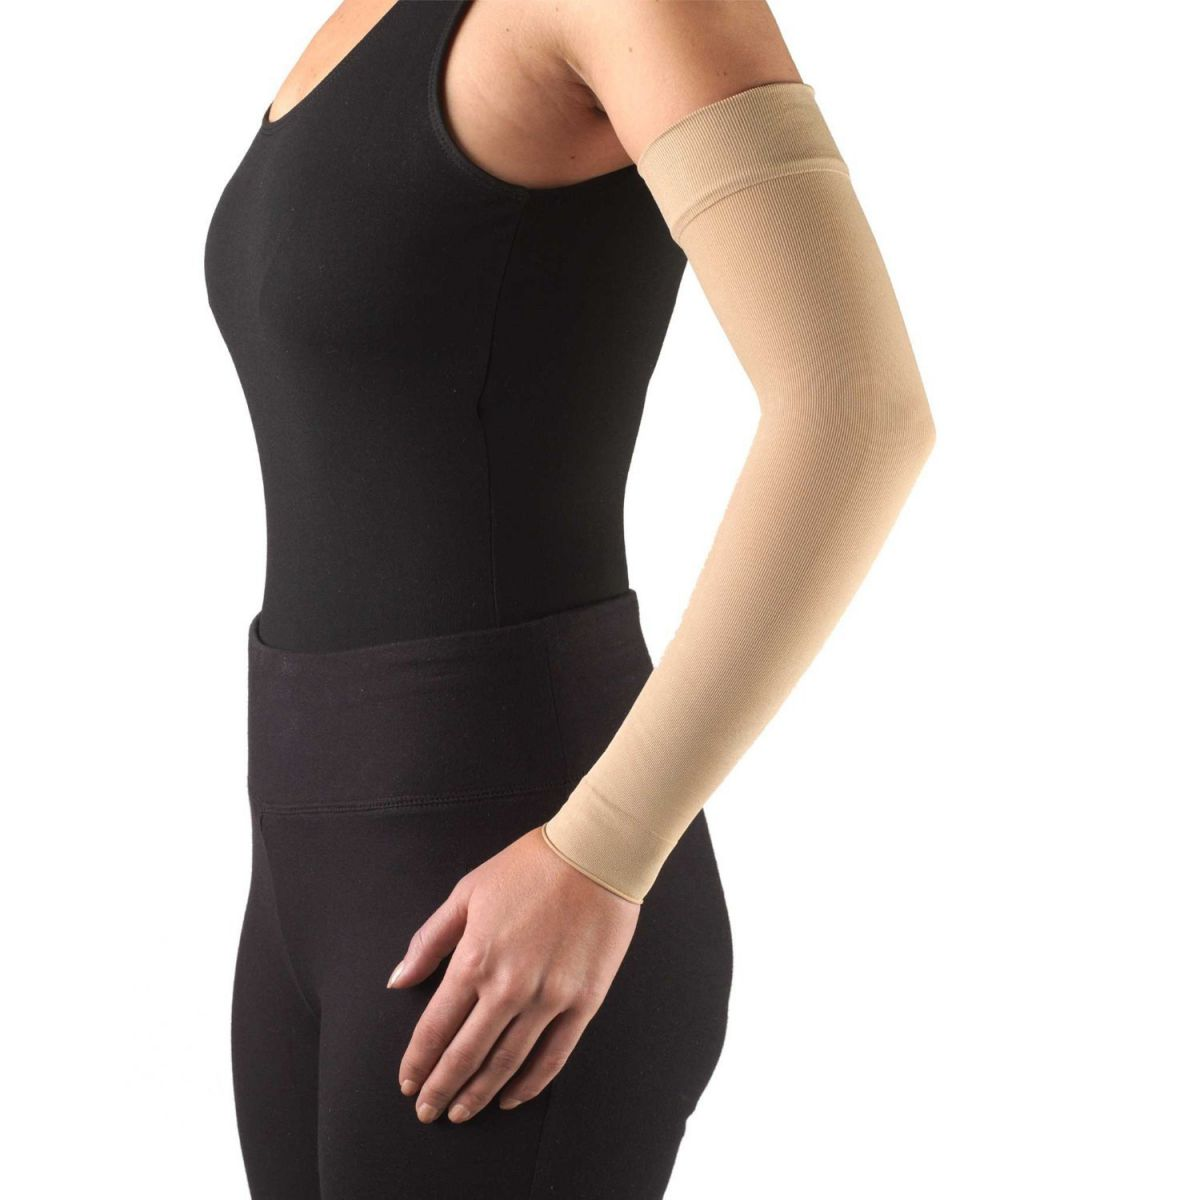 Ready-Wear Sleeve / Upper Extremity